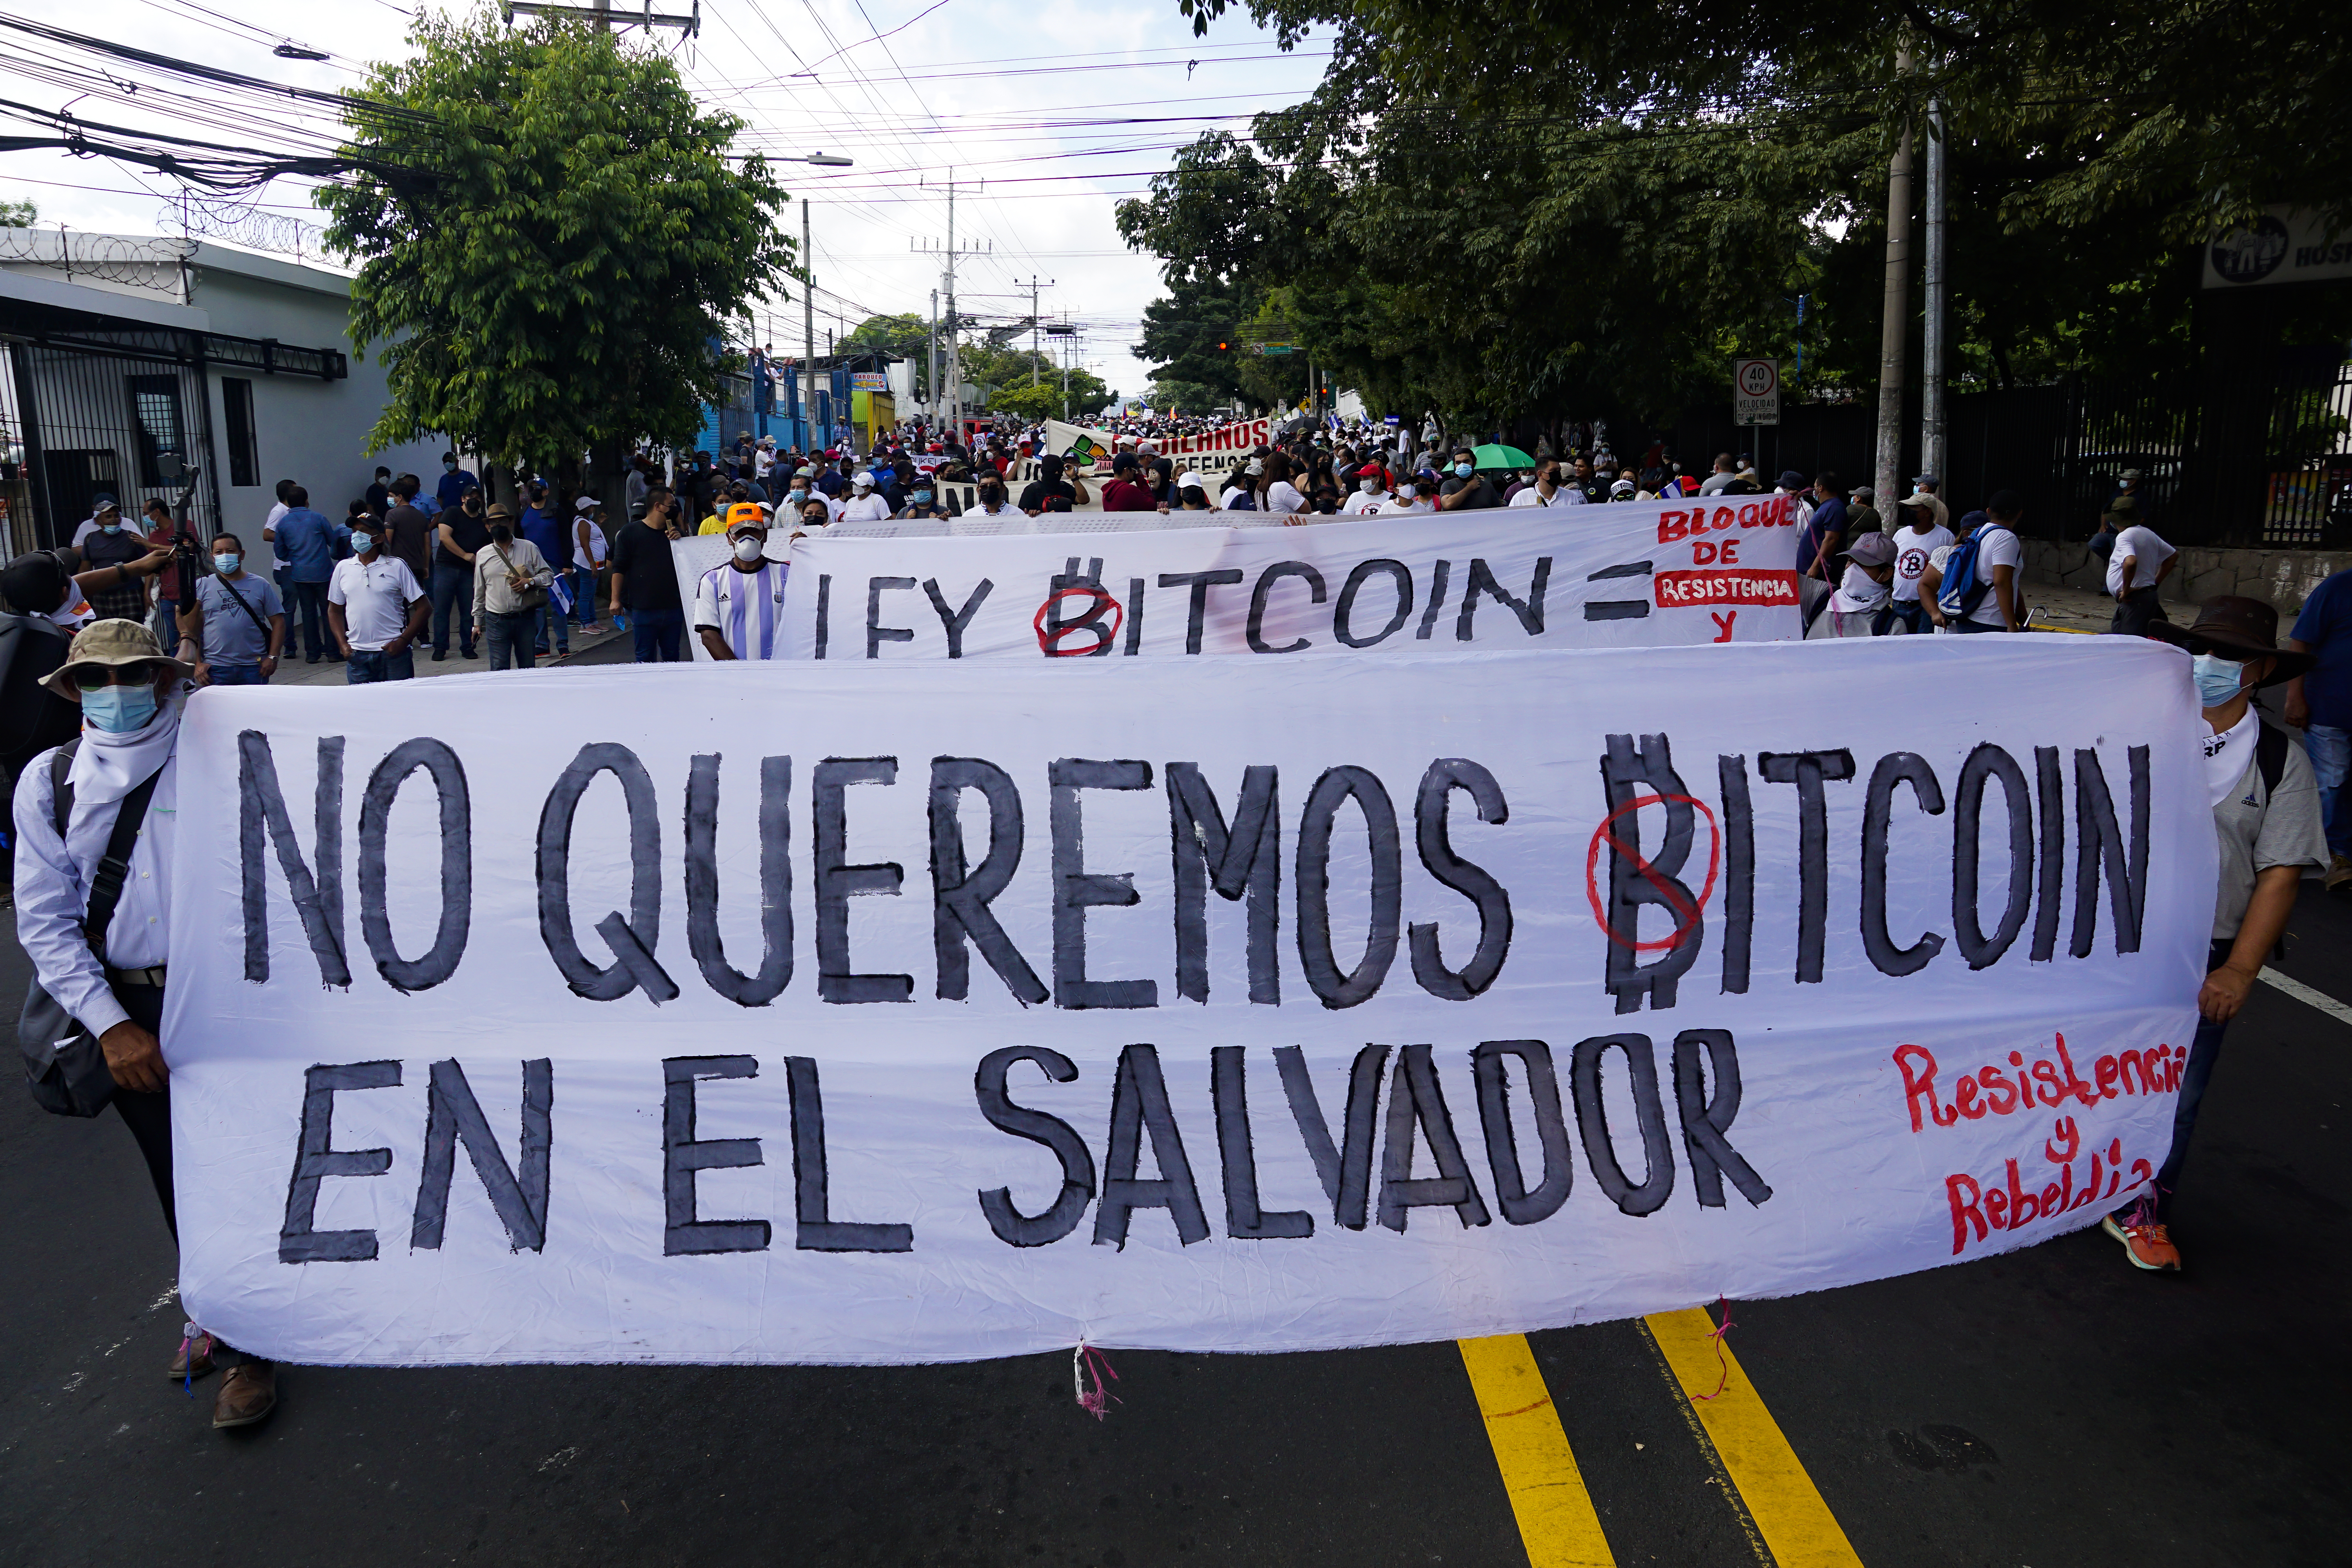 Salvadorans protest against the Bitcoin Law